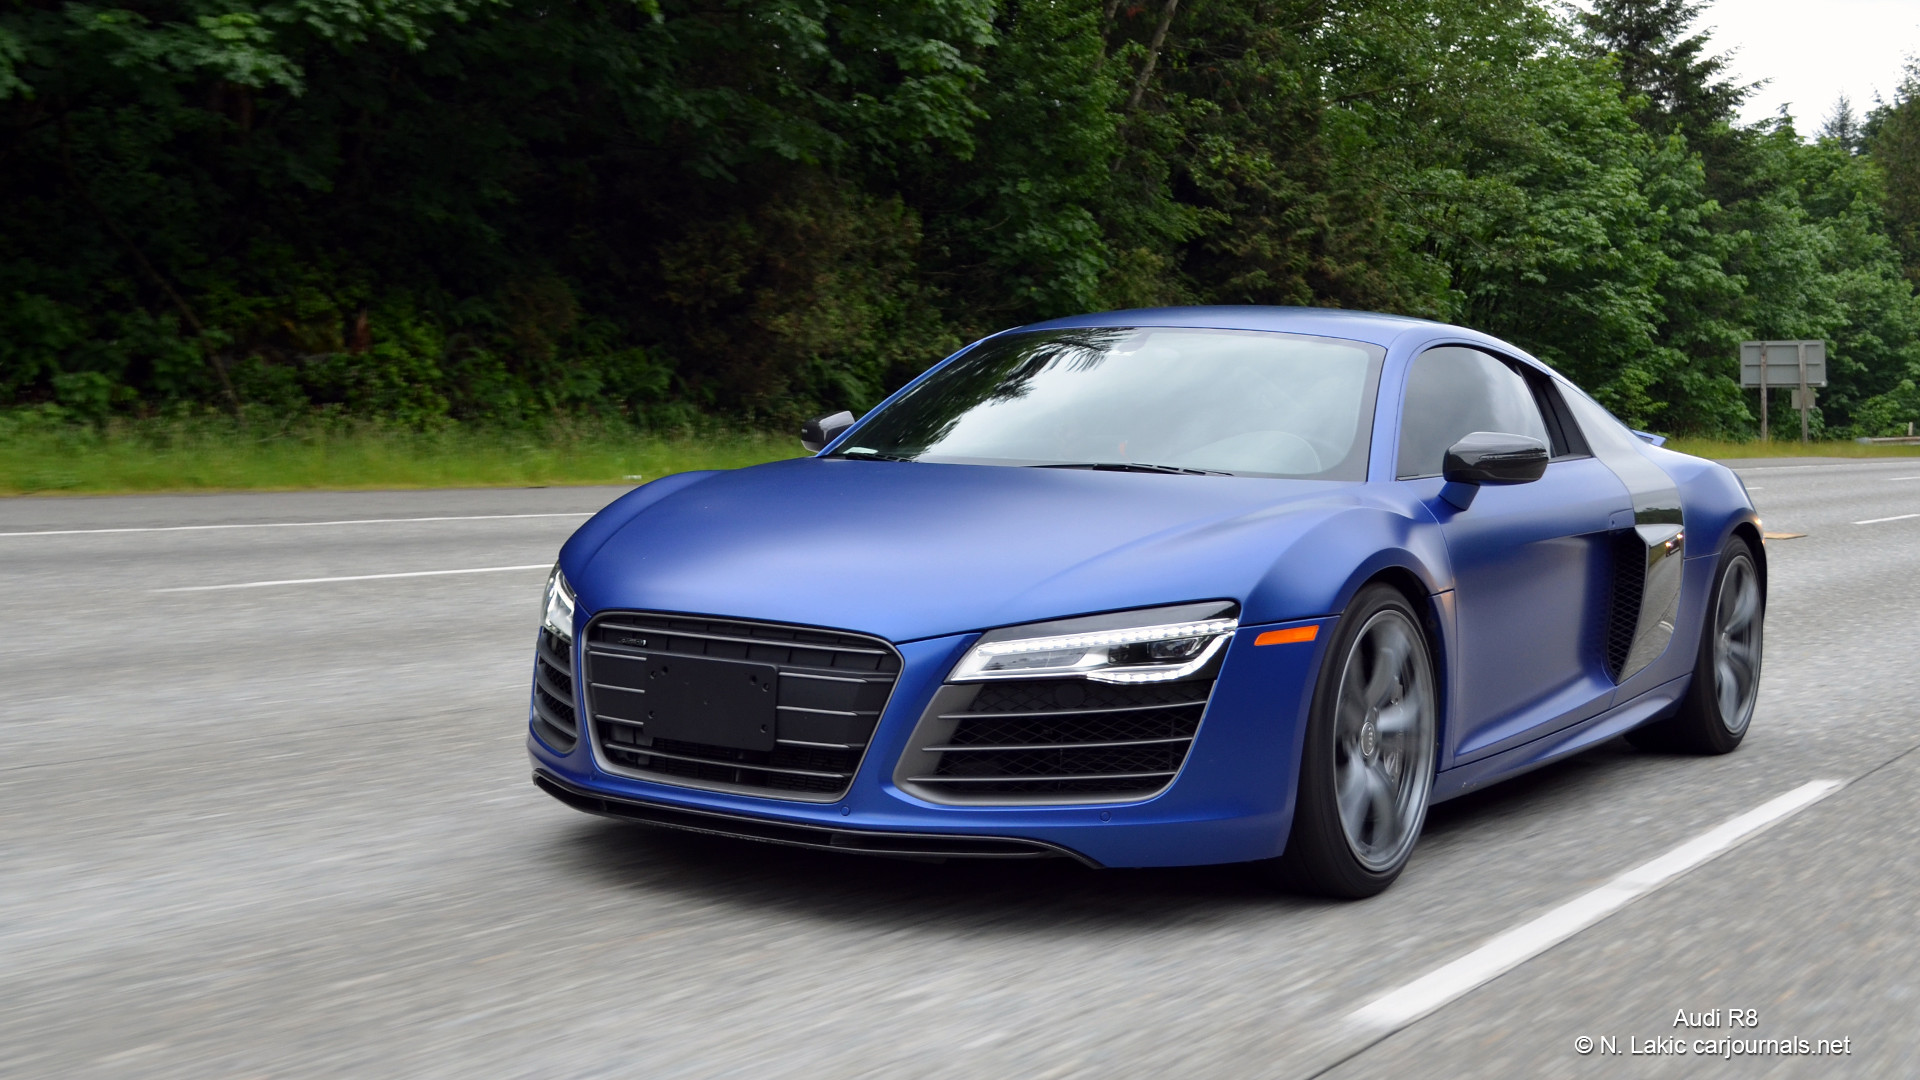 HD Car Wallpapers – Blue Audi R8 – Car Journals